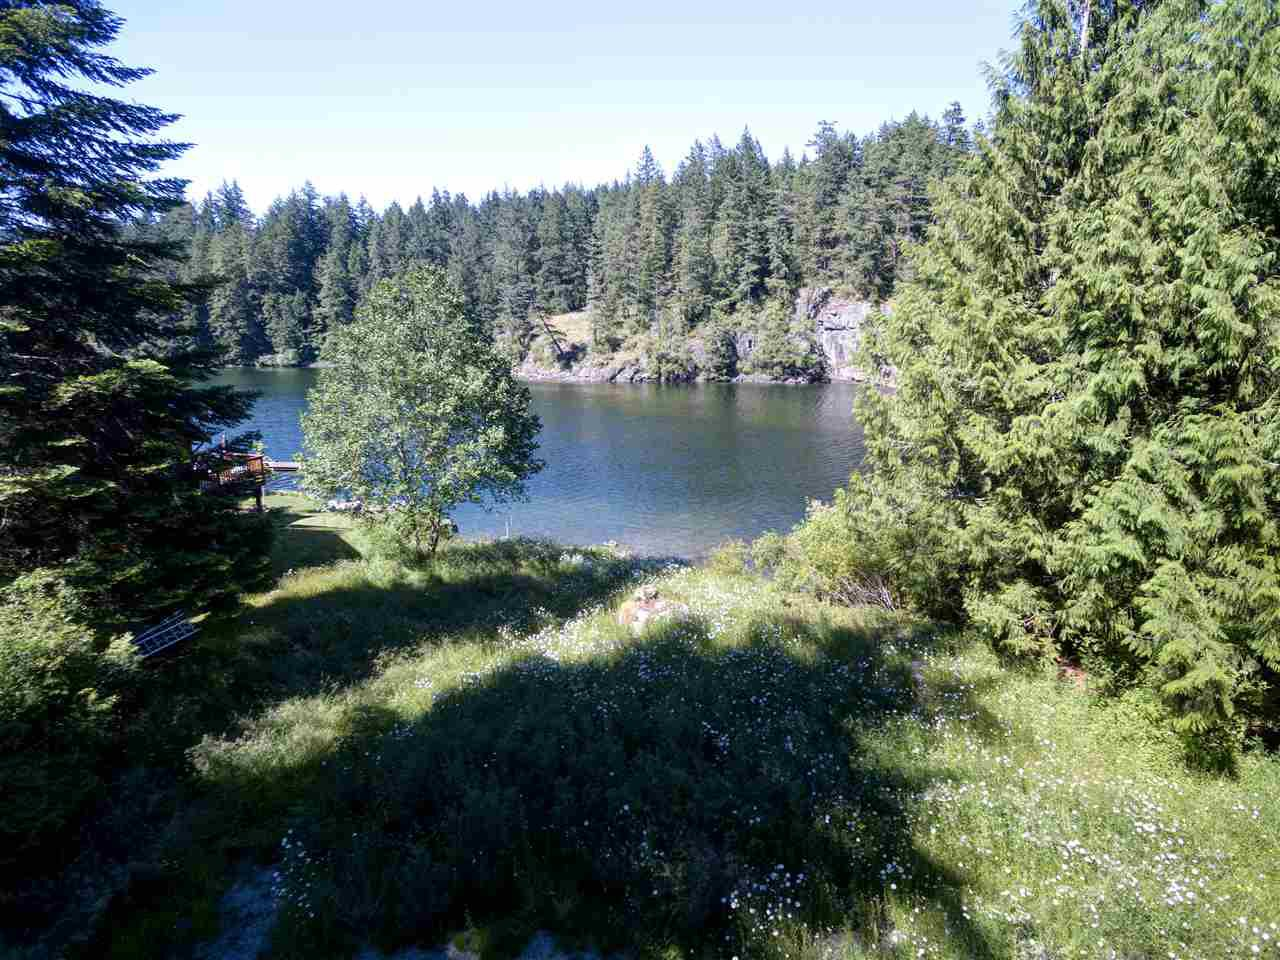 Main Photo: 9818 WESCAN Road in Halfmoon Bay: Halfmn Bay Secret Cv Redroofs Land for sale (Sunshine Coast)  : MLS®# R2375125